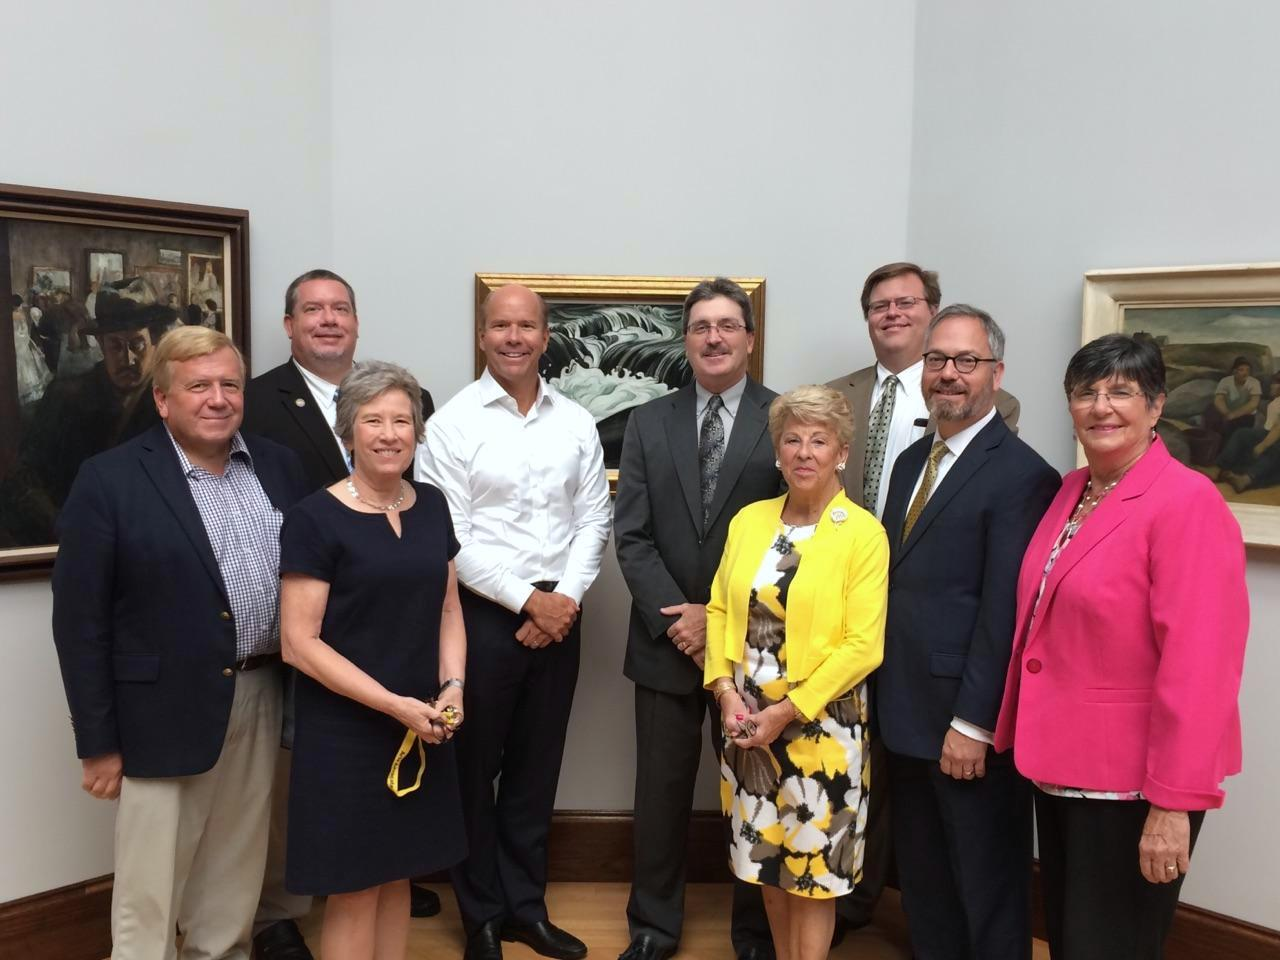 From left to right; Al Martin, WCMFA Trustee President; Chris Strovel, Eastern Panhandle Field Representative, Senator Shelley Moore Capito (WV); Rebecca Massie Lane, Museum Director; U.S. Representative John Delaney, (MD-6); Wallace Lee, Museum Development Director; Mary Jo Brown, Regional Coordinator, Senator Joe Manchin (WV); Stephen Smoot, Eastern Panhandle Director, U.S. Representative Alex Mooney (WV); Robin Summerfield, Field Representative, Senator Ben Cardin (MD); Julianna Albowicz, Special Assistant to Senator Barbara Mikulski (MD). Photo Credit: Washington County Museum of Fine Arts